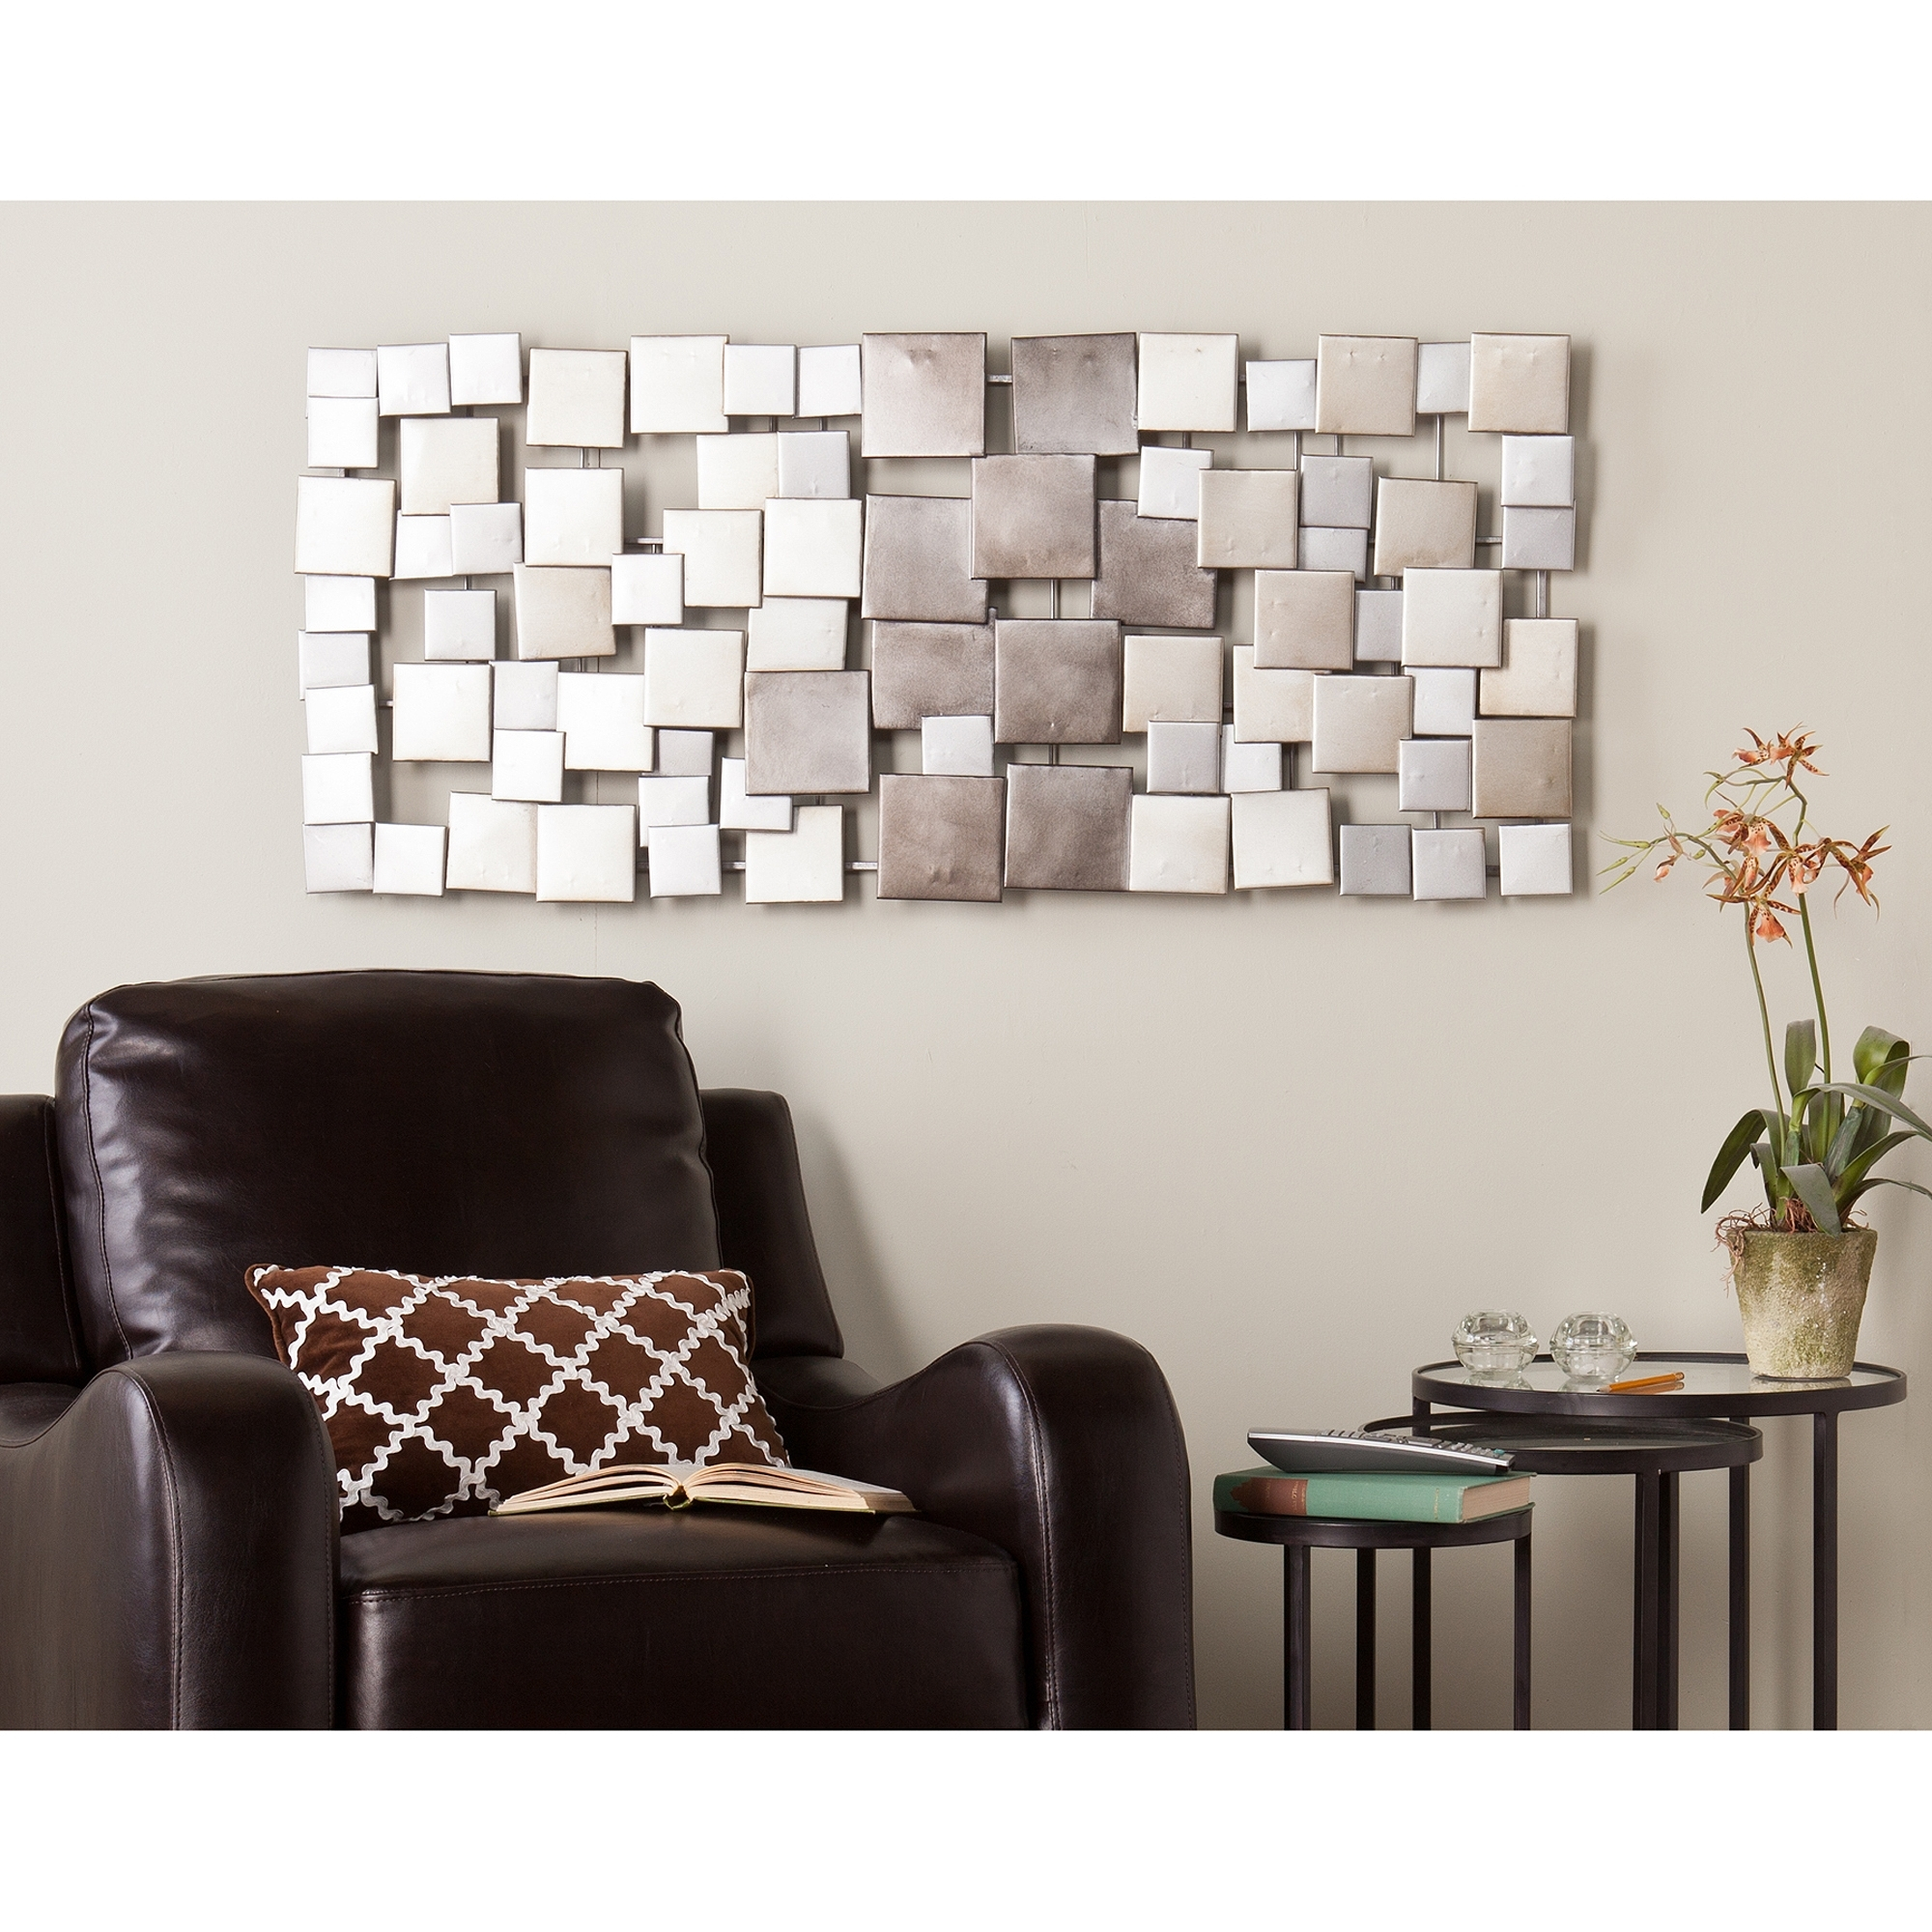 Metal Wall Art – Walmart For Most Popular Canvas Wall Art At Walmart (View 7 of 15)